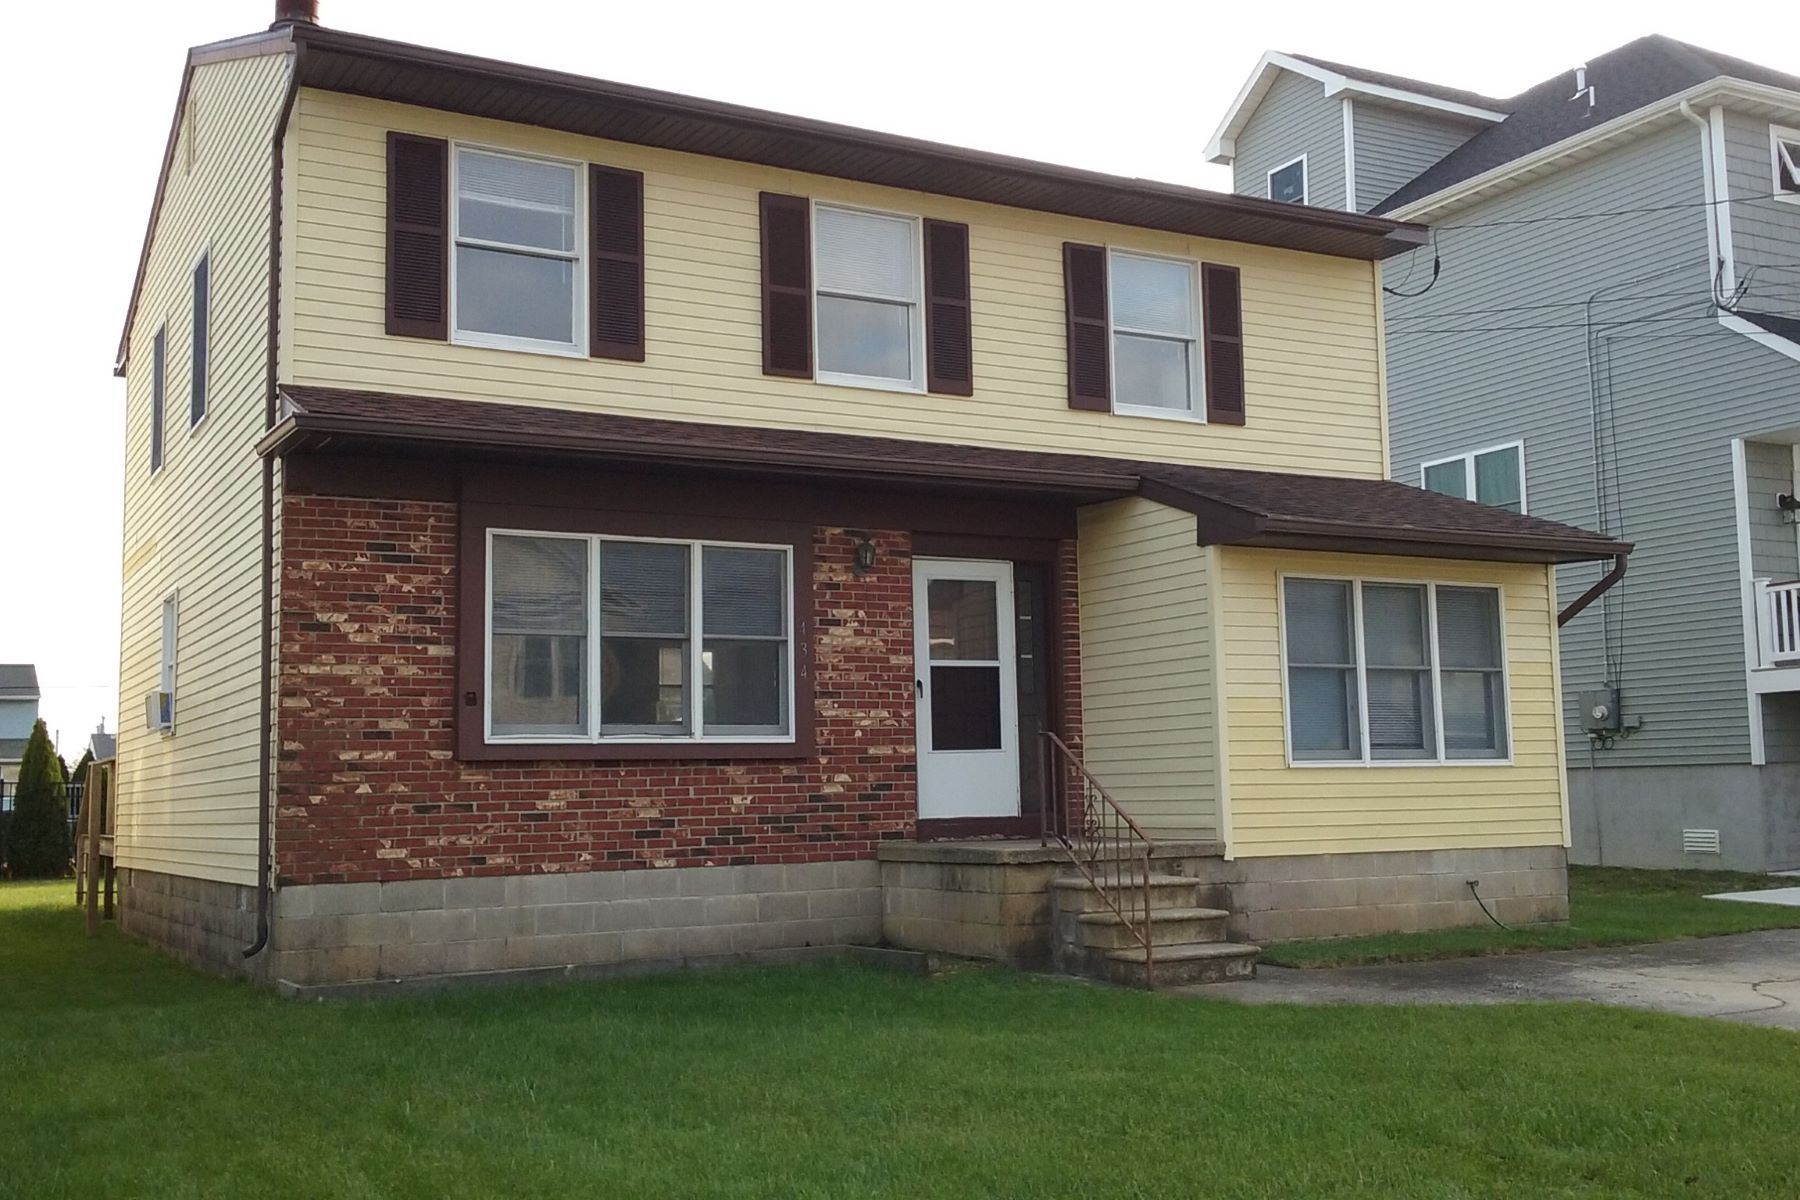 Single Family Home for Sale at 434 Lafayette Blvd Brigantine, New Jersey 08203 United States